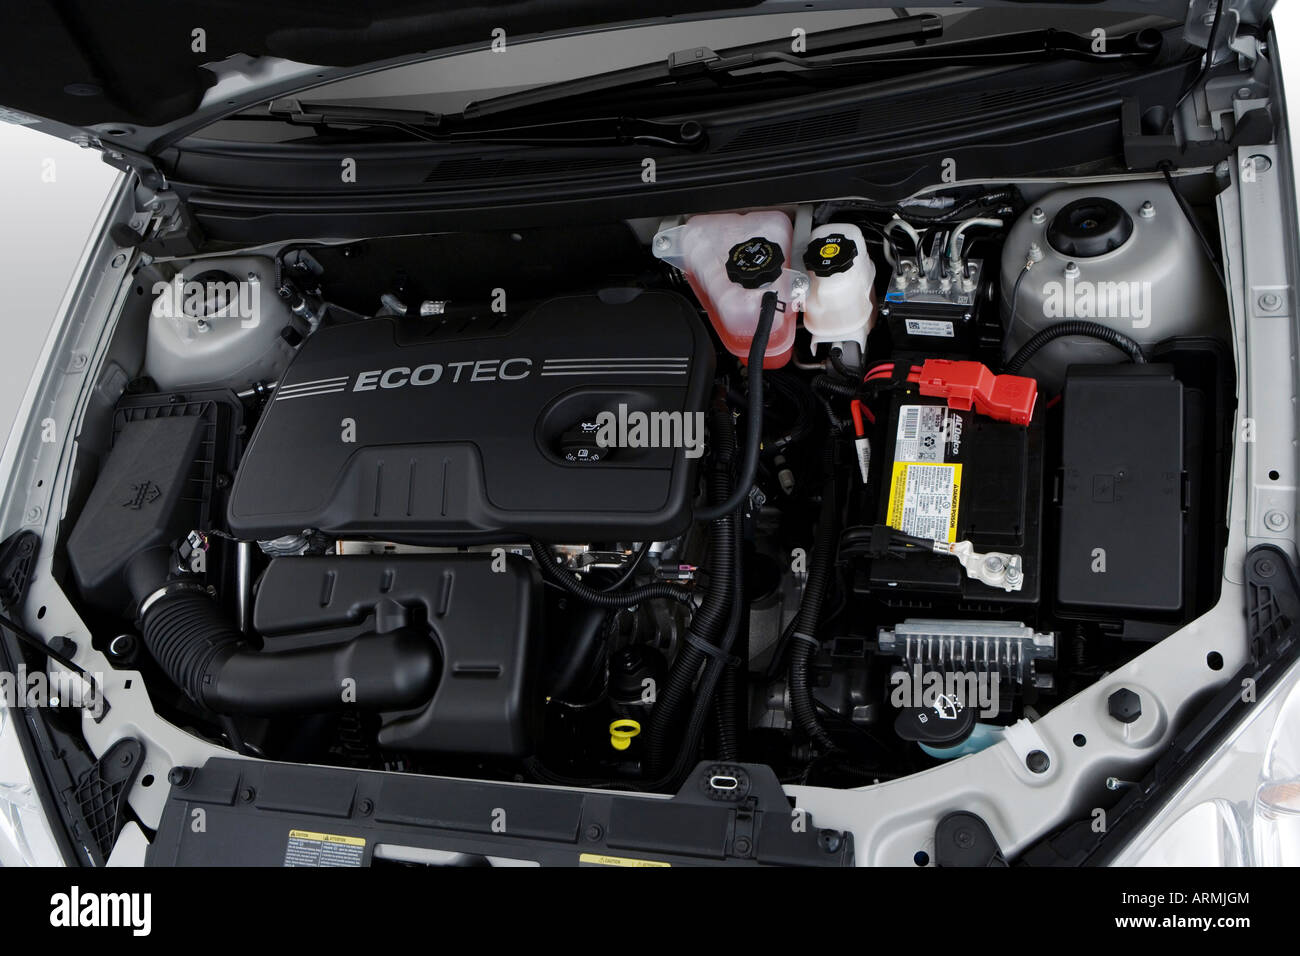 2008 Pontiac G6 in Silver - Engine Stock Photo - Alamy